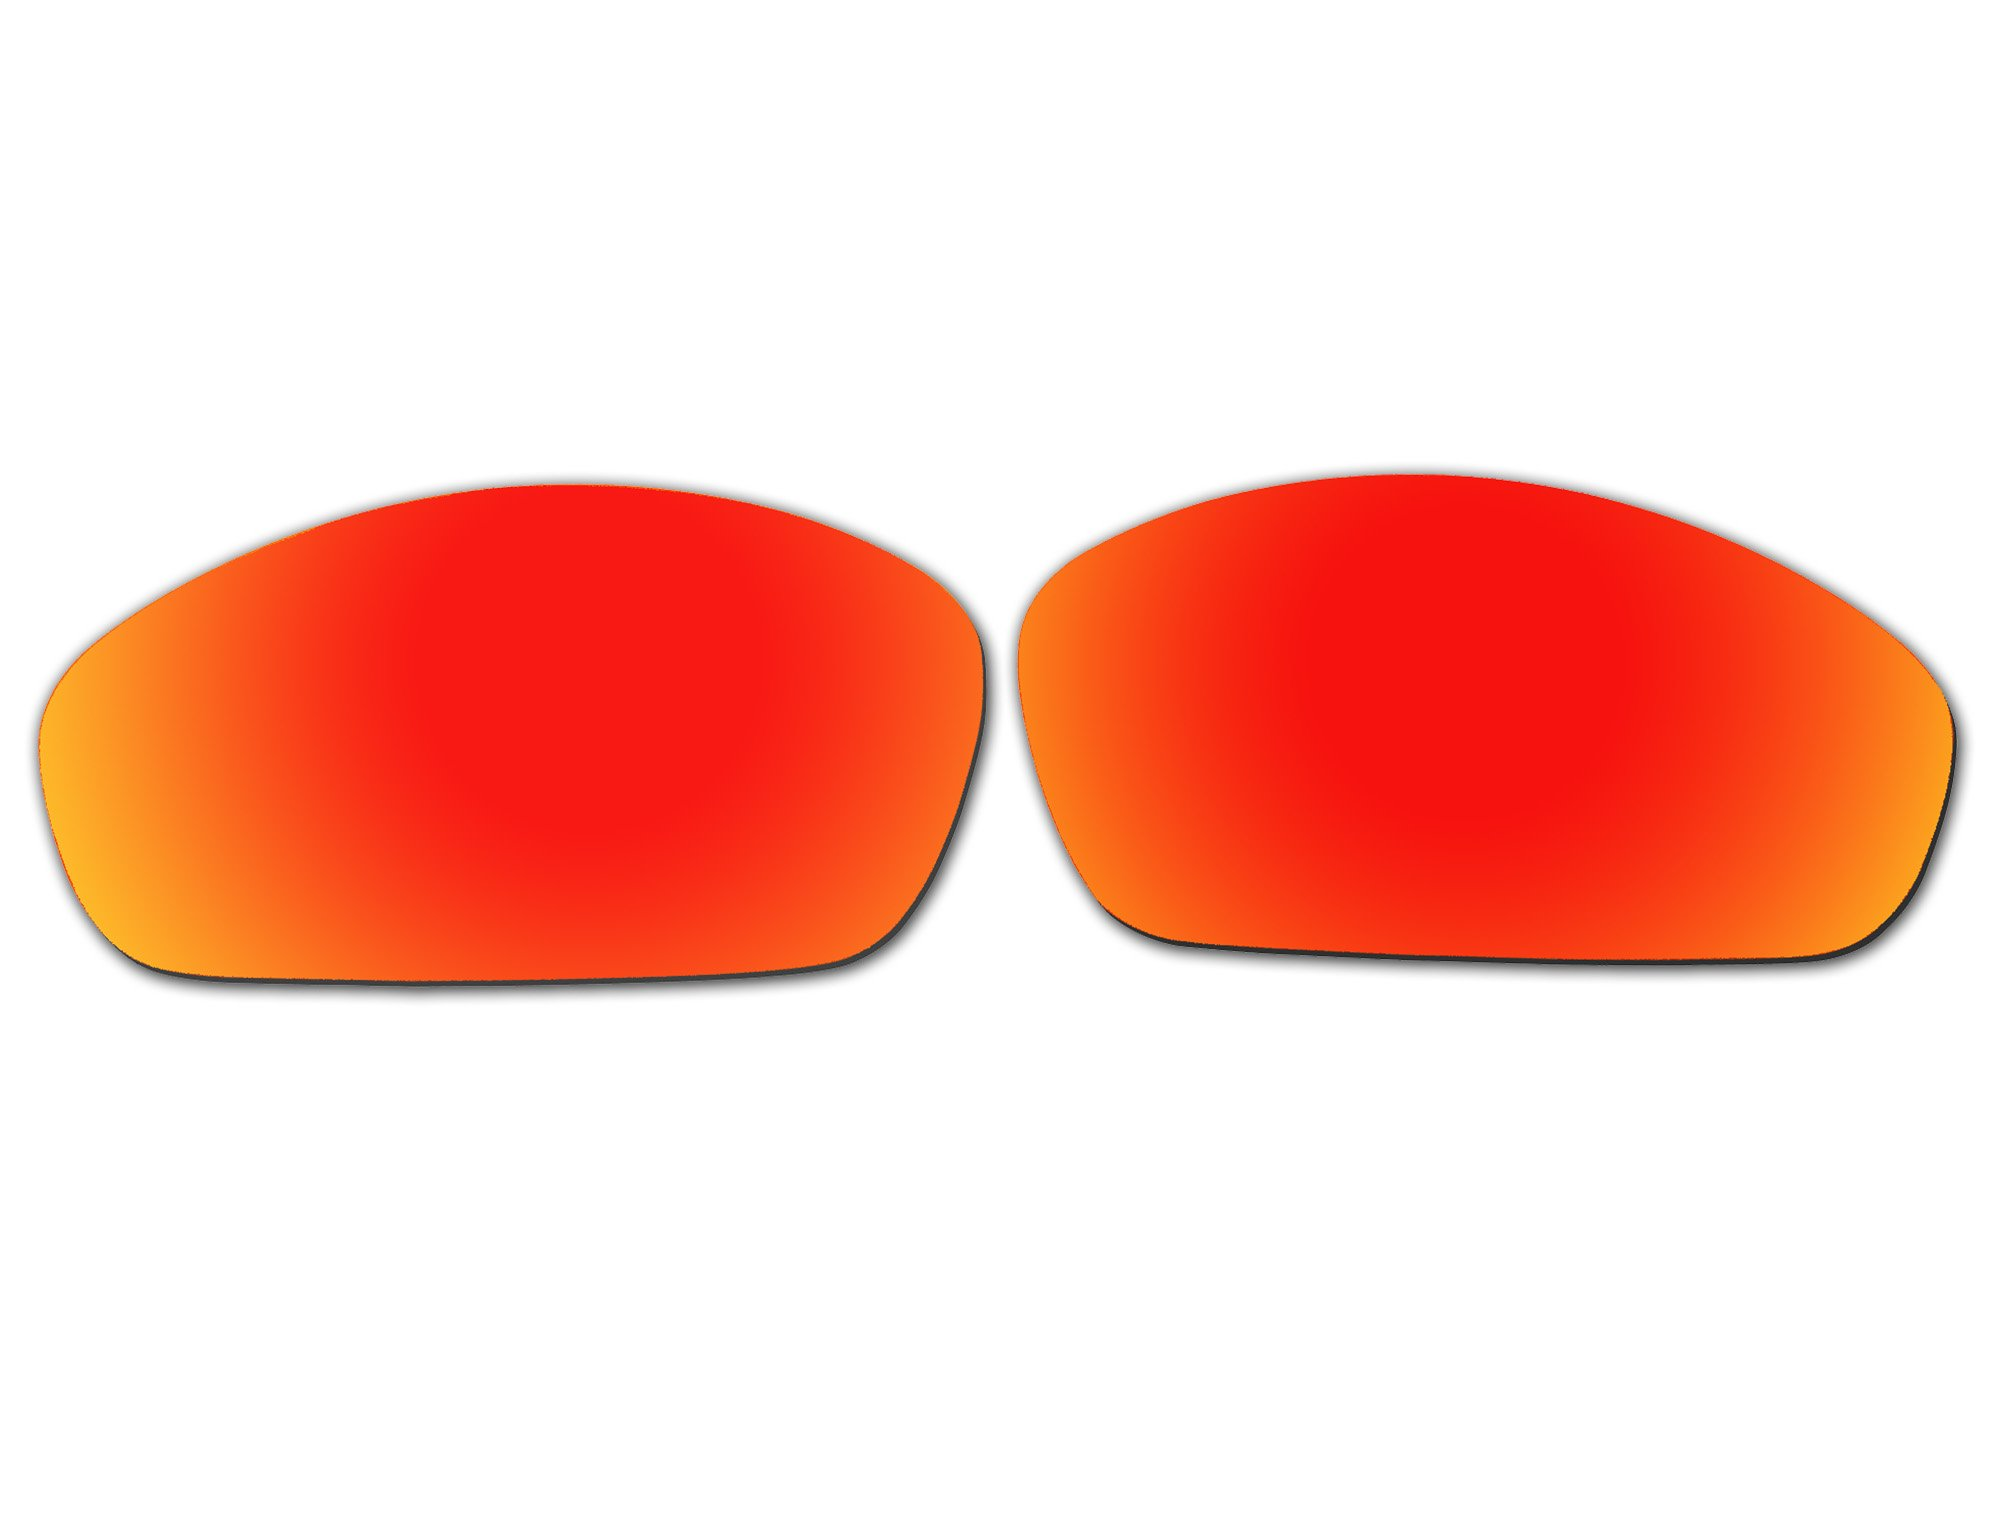 Polarized Replacement Sunglasses Lenses for Oakley Straight Jacket 2007 with UV Protection(Fire Red Mirror)